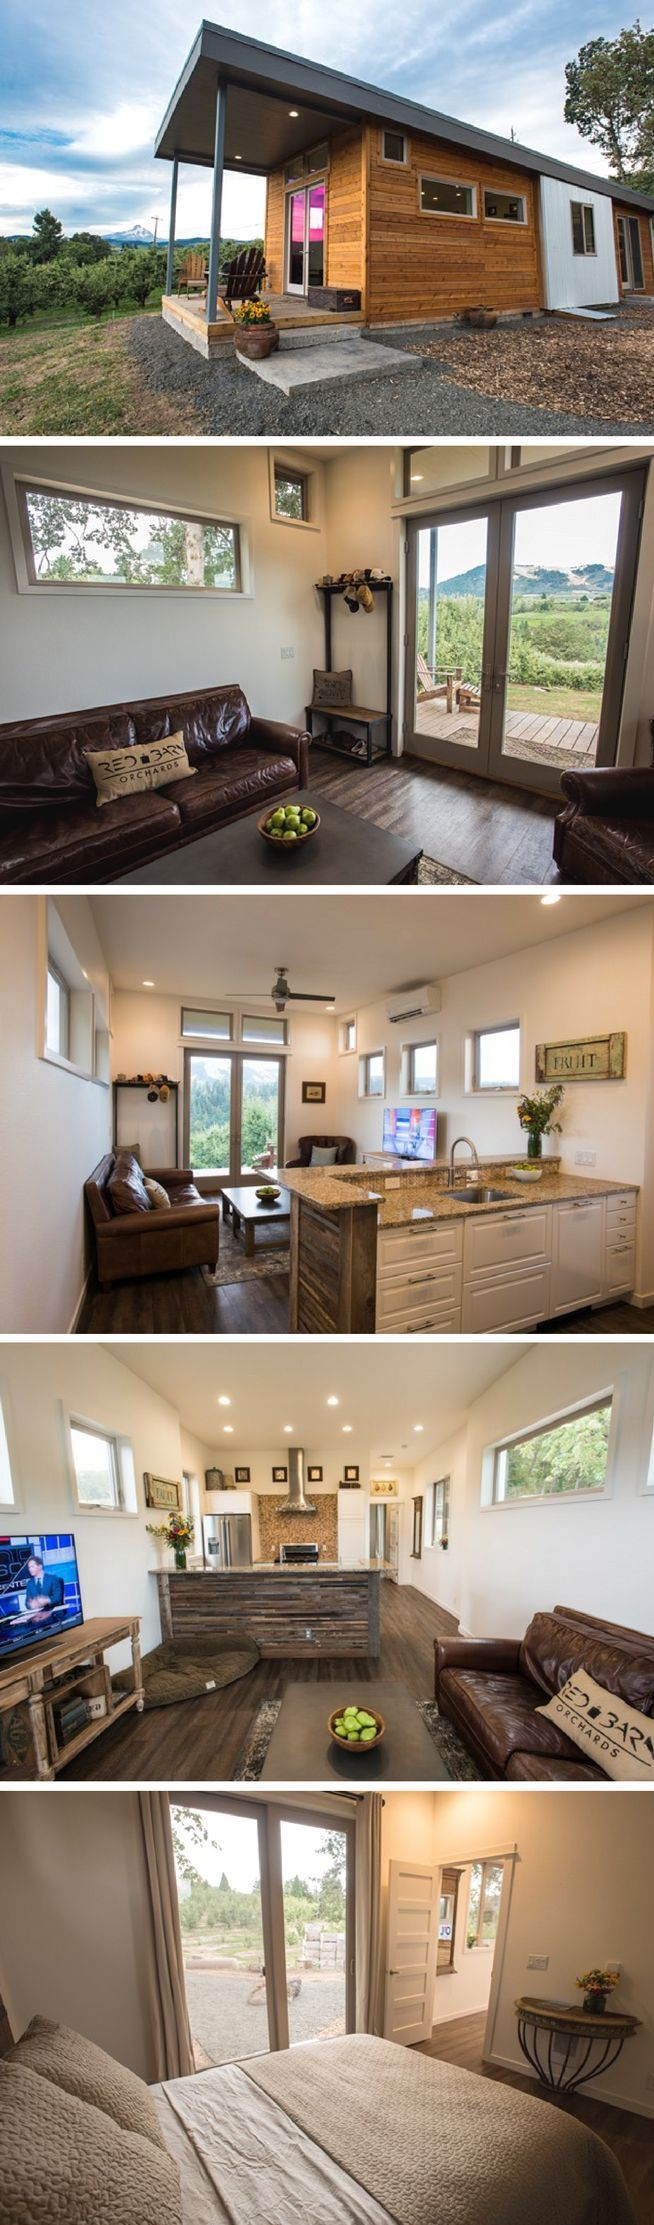 cool The Orchard: a 750 sq ft park model home from IdeaBox.... by http://www.danazhome-decorations.xyz/tiny-homes/the-orchard-a-750-sq-ft-park-model-home-from-ideabox/